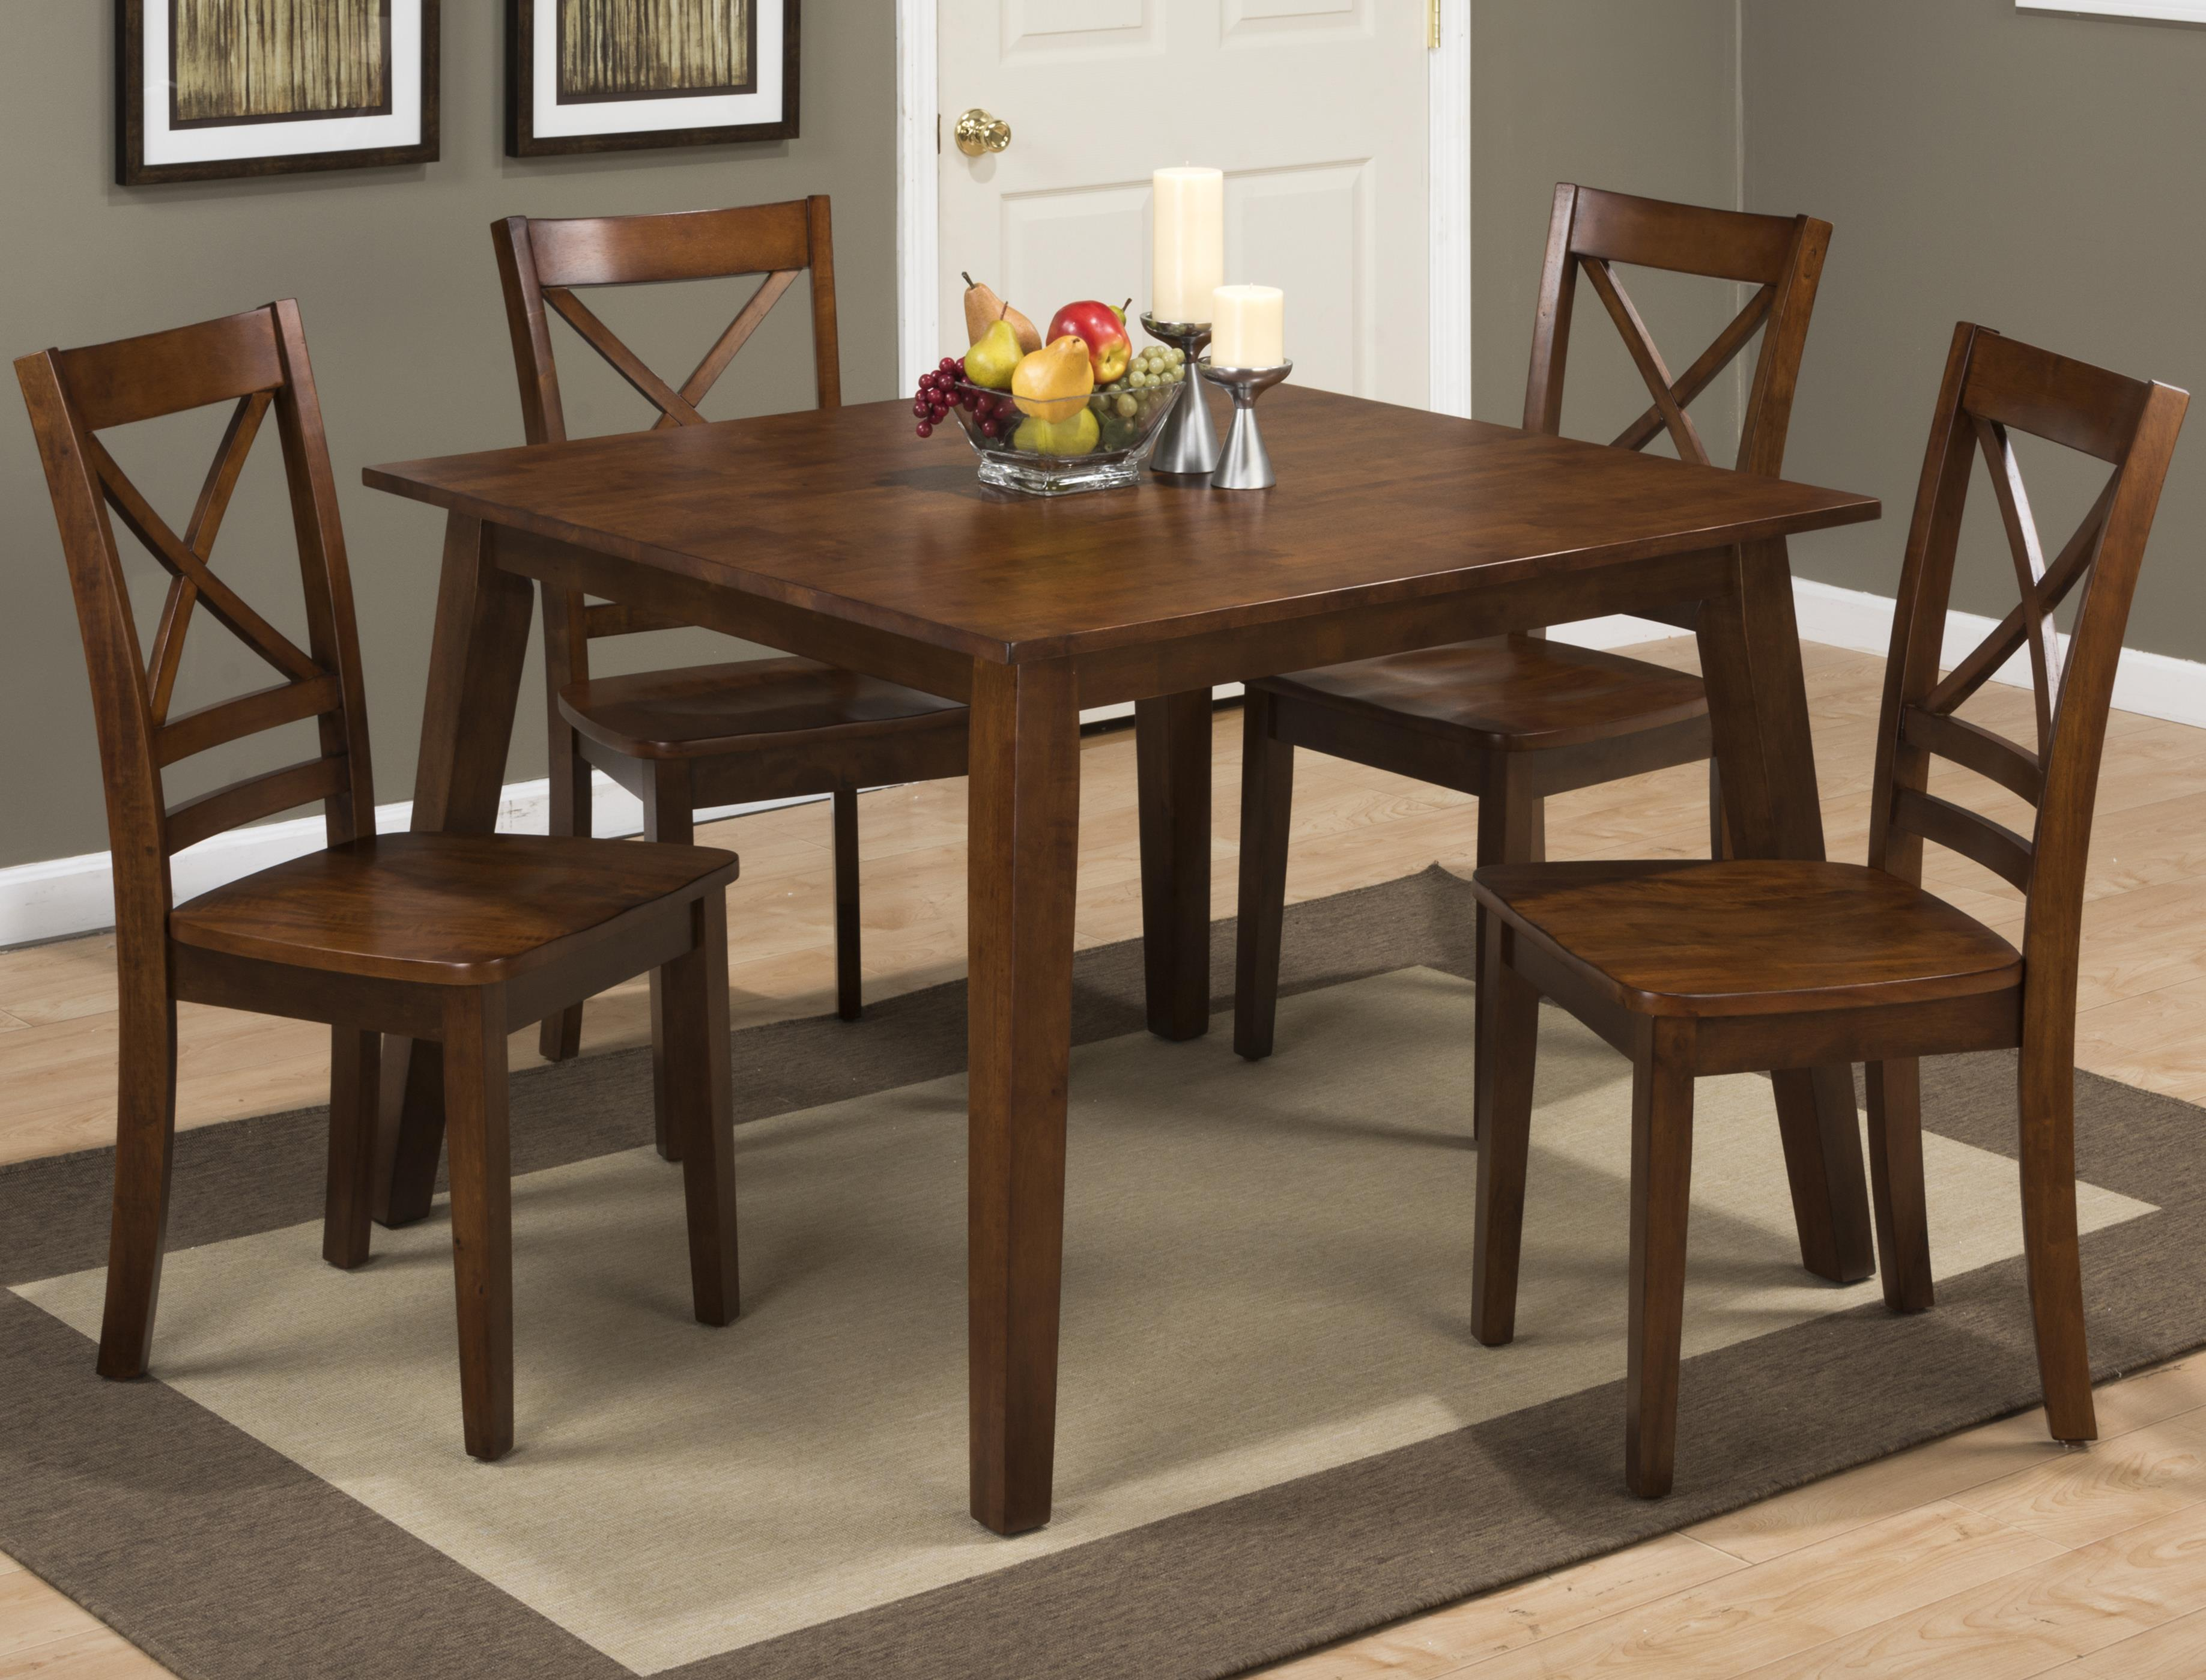 Jofran Simplicity Square Dining Table that Seats